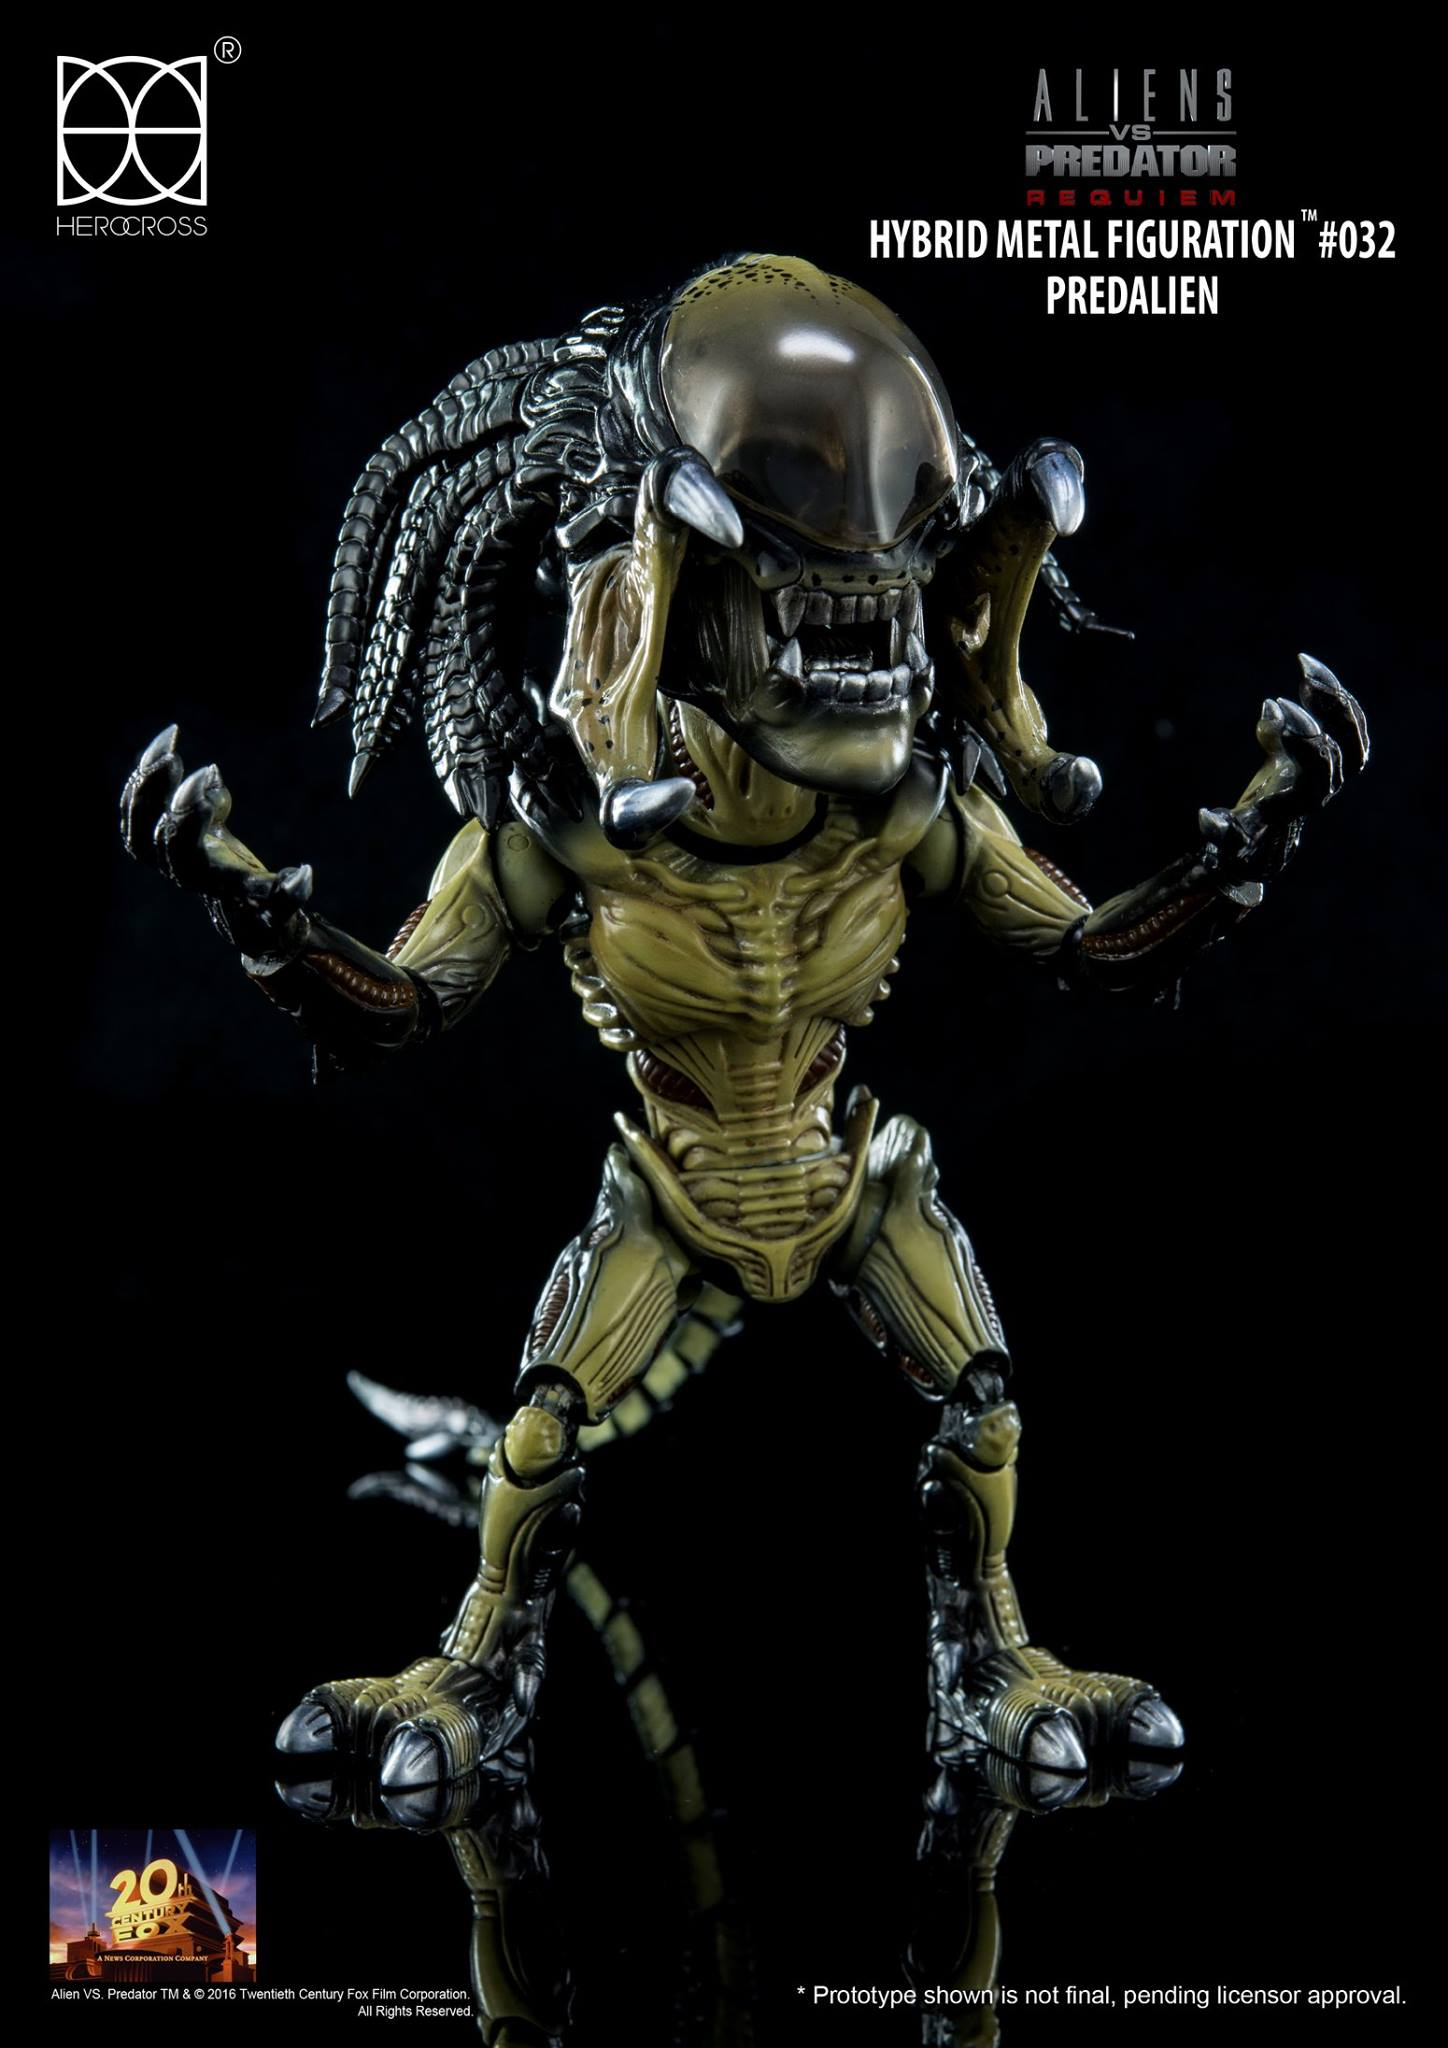 Hybrid Metal Figuration AvP Predalien by HEROCROSS - The